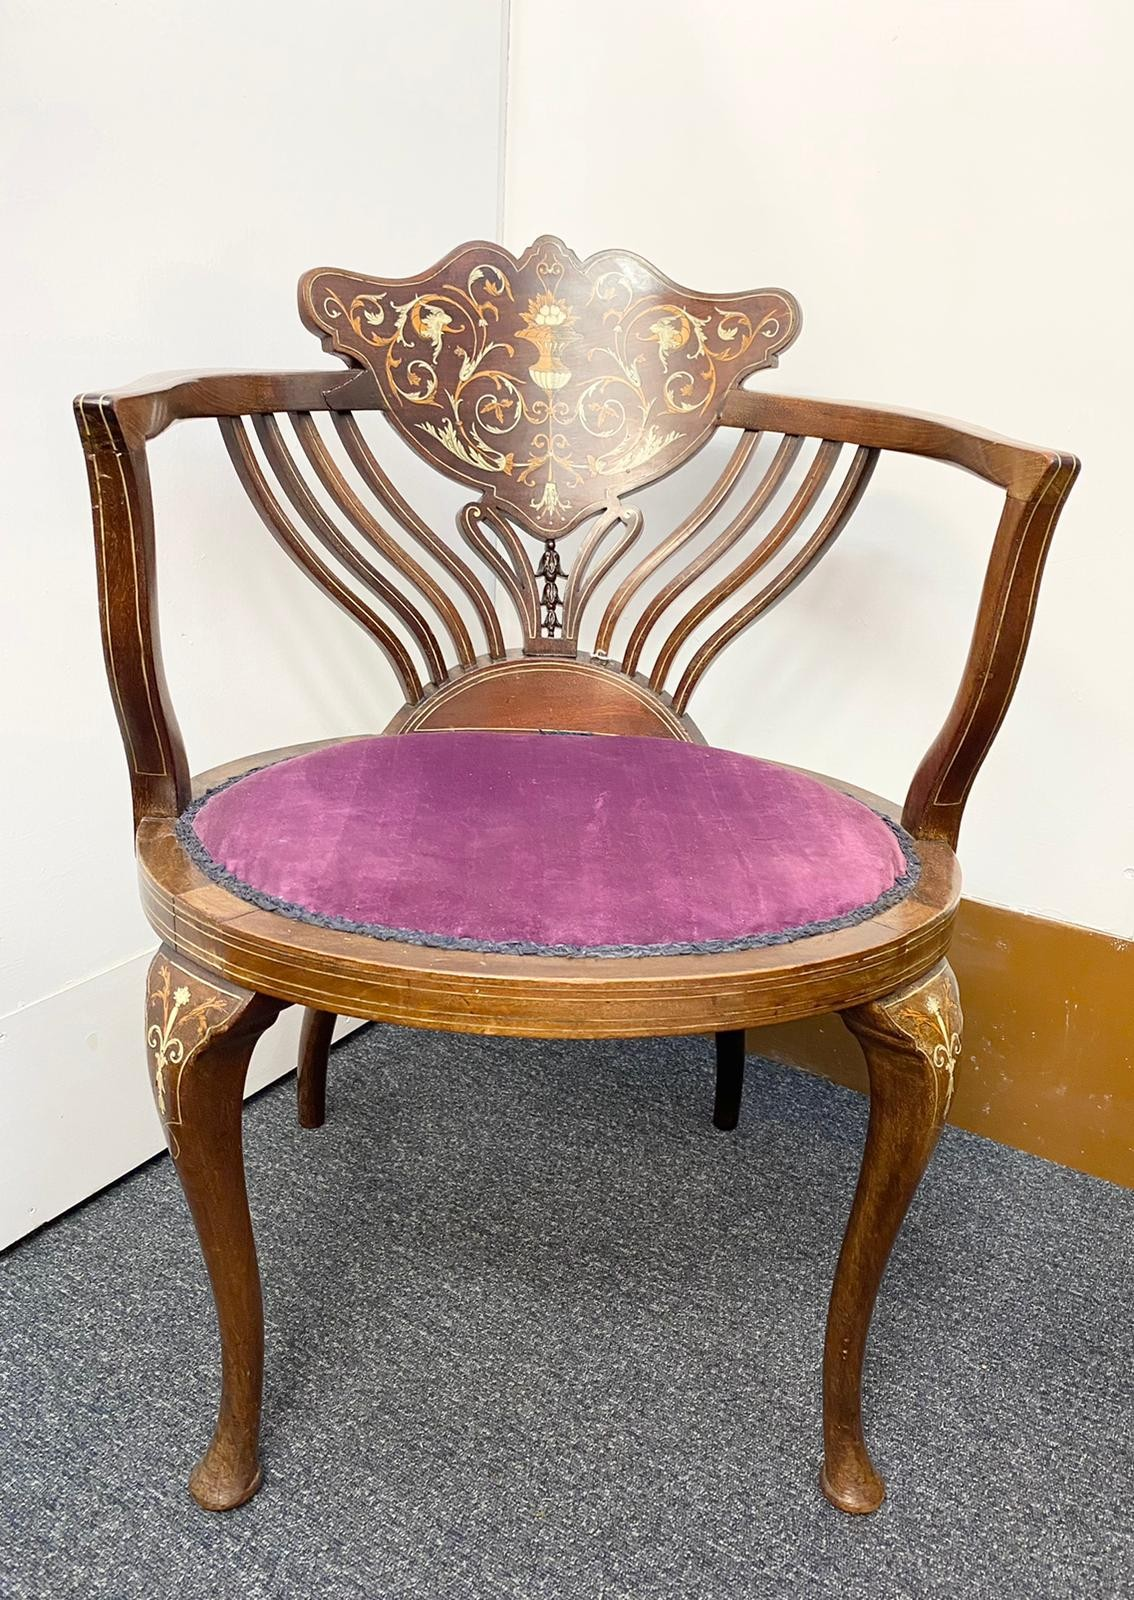 Designed by Stephen Web for Collinson and Lock and Sold by Waring & Gillow in 1890 to the Thomas - Image 3 of 8